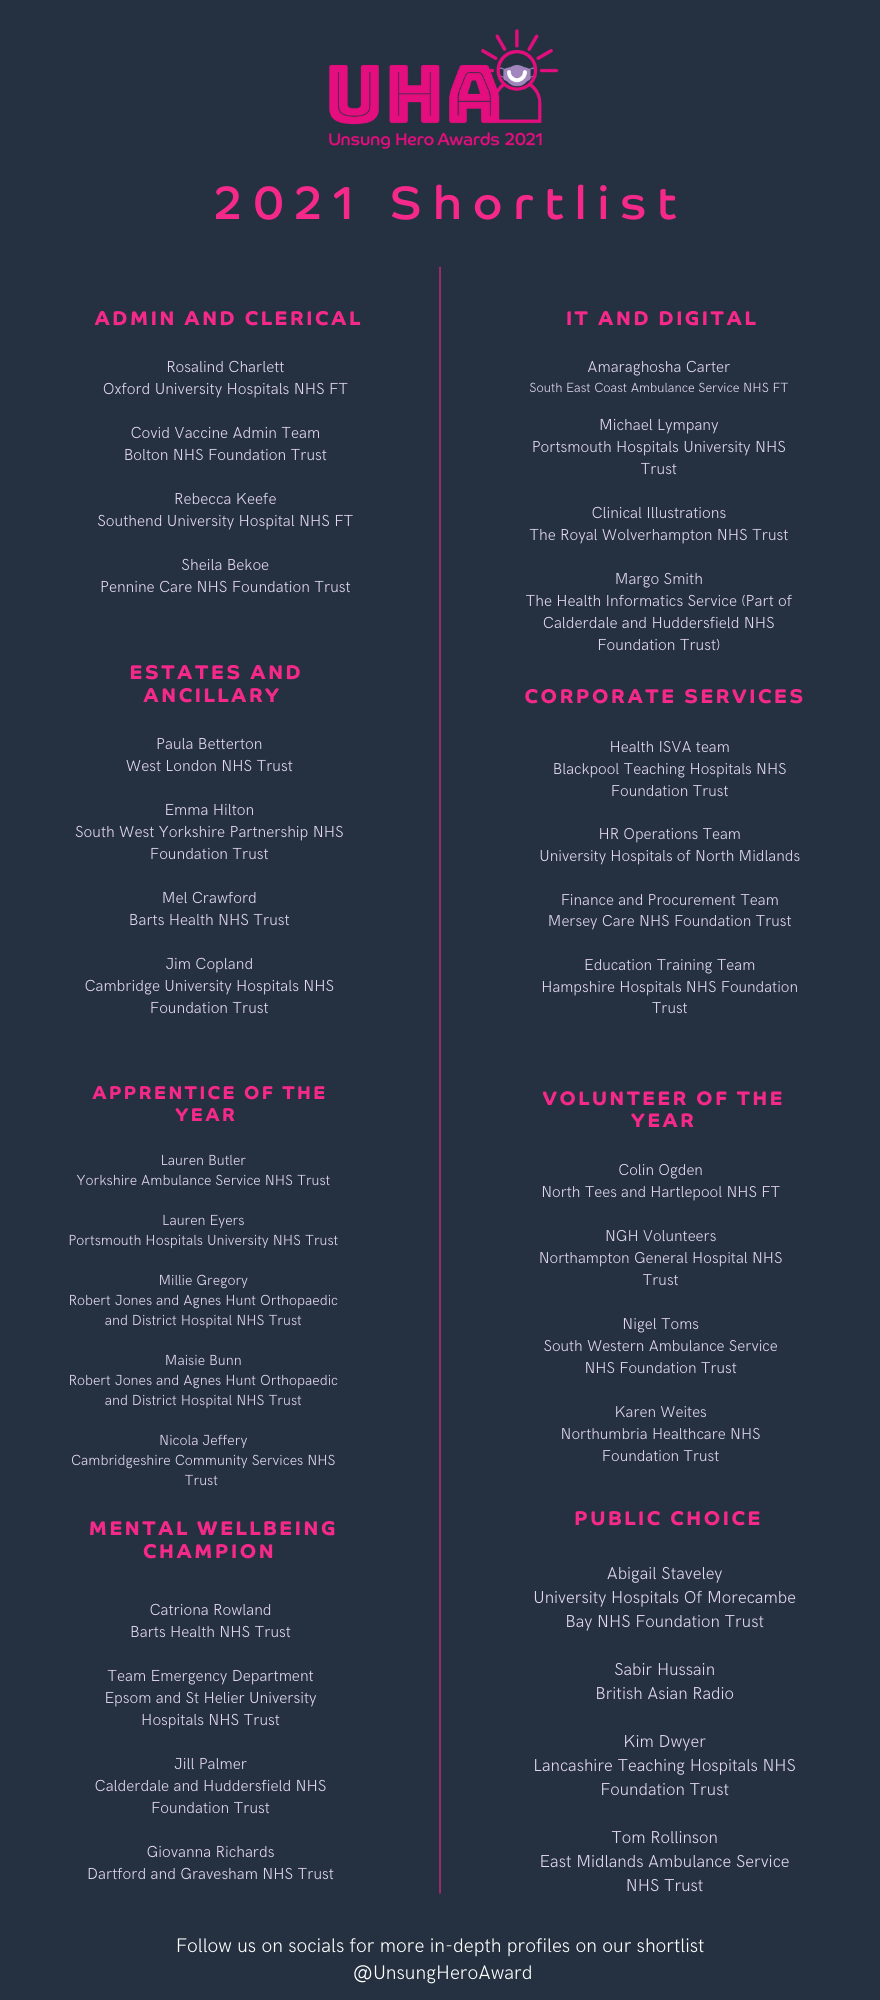 A graphic showing the shortlist for the Unsung Hero Awards 2021